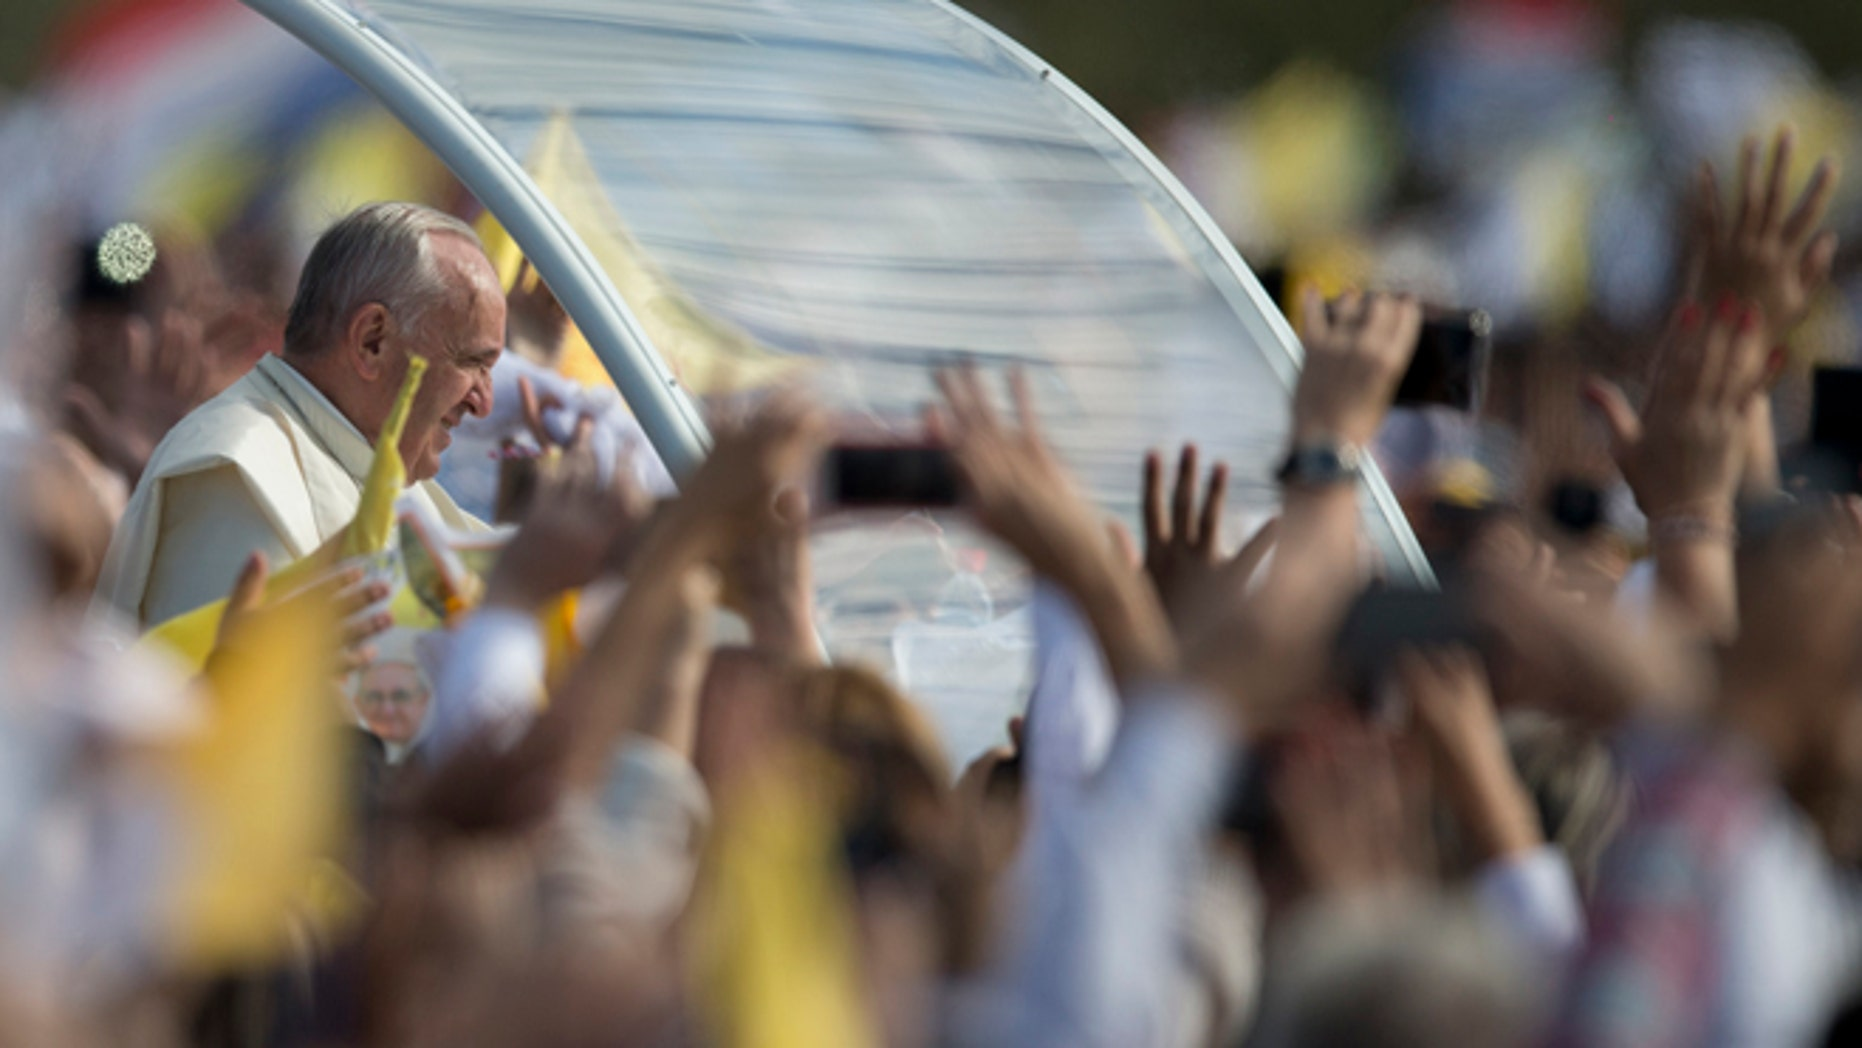 Pope Francis arrives to celebrate a mass in Asuncion, Paraguay, Sunday, July 12, 2015. The Pope arrived Friday afternoon in the Paraguayan capital of Asuncion on the final leg of his three-nation tour of South America's poorest countries that included Ecuador and neighboring Bolivia. (AP Photo/Natacha Pisarenko)